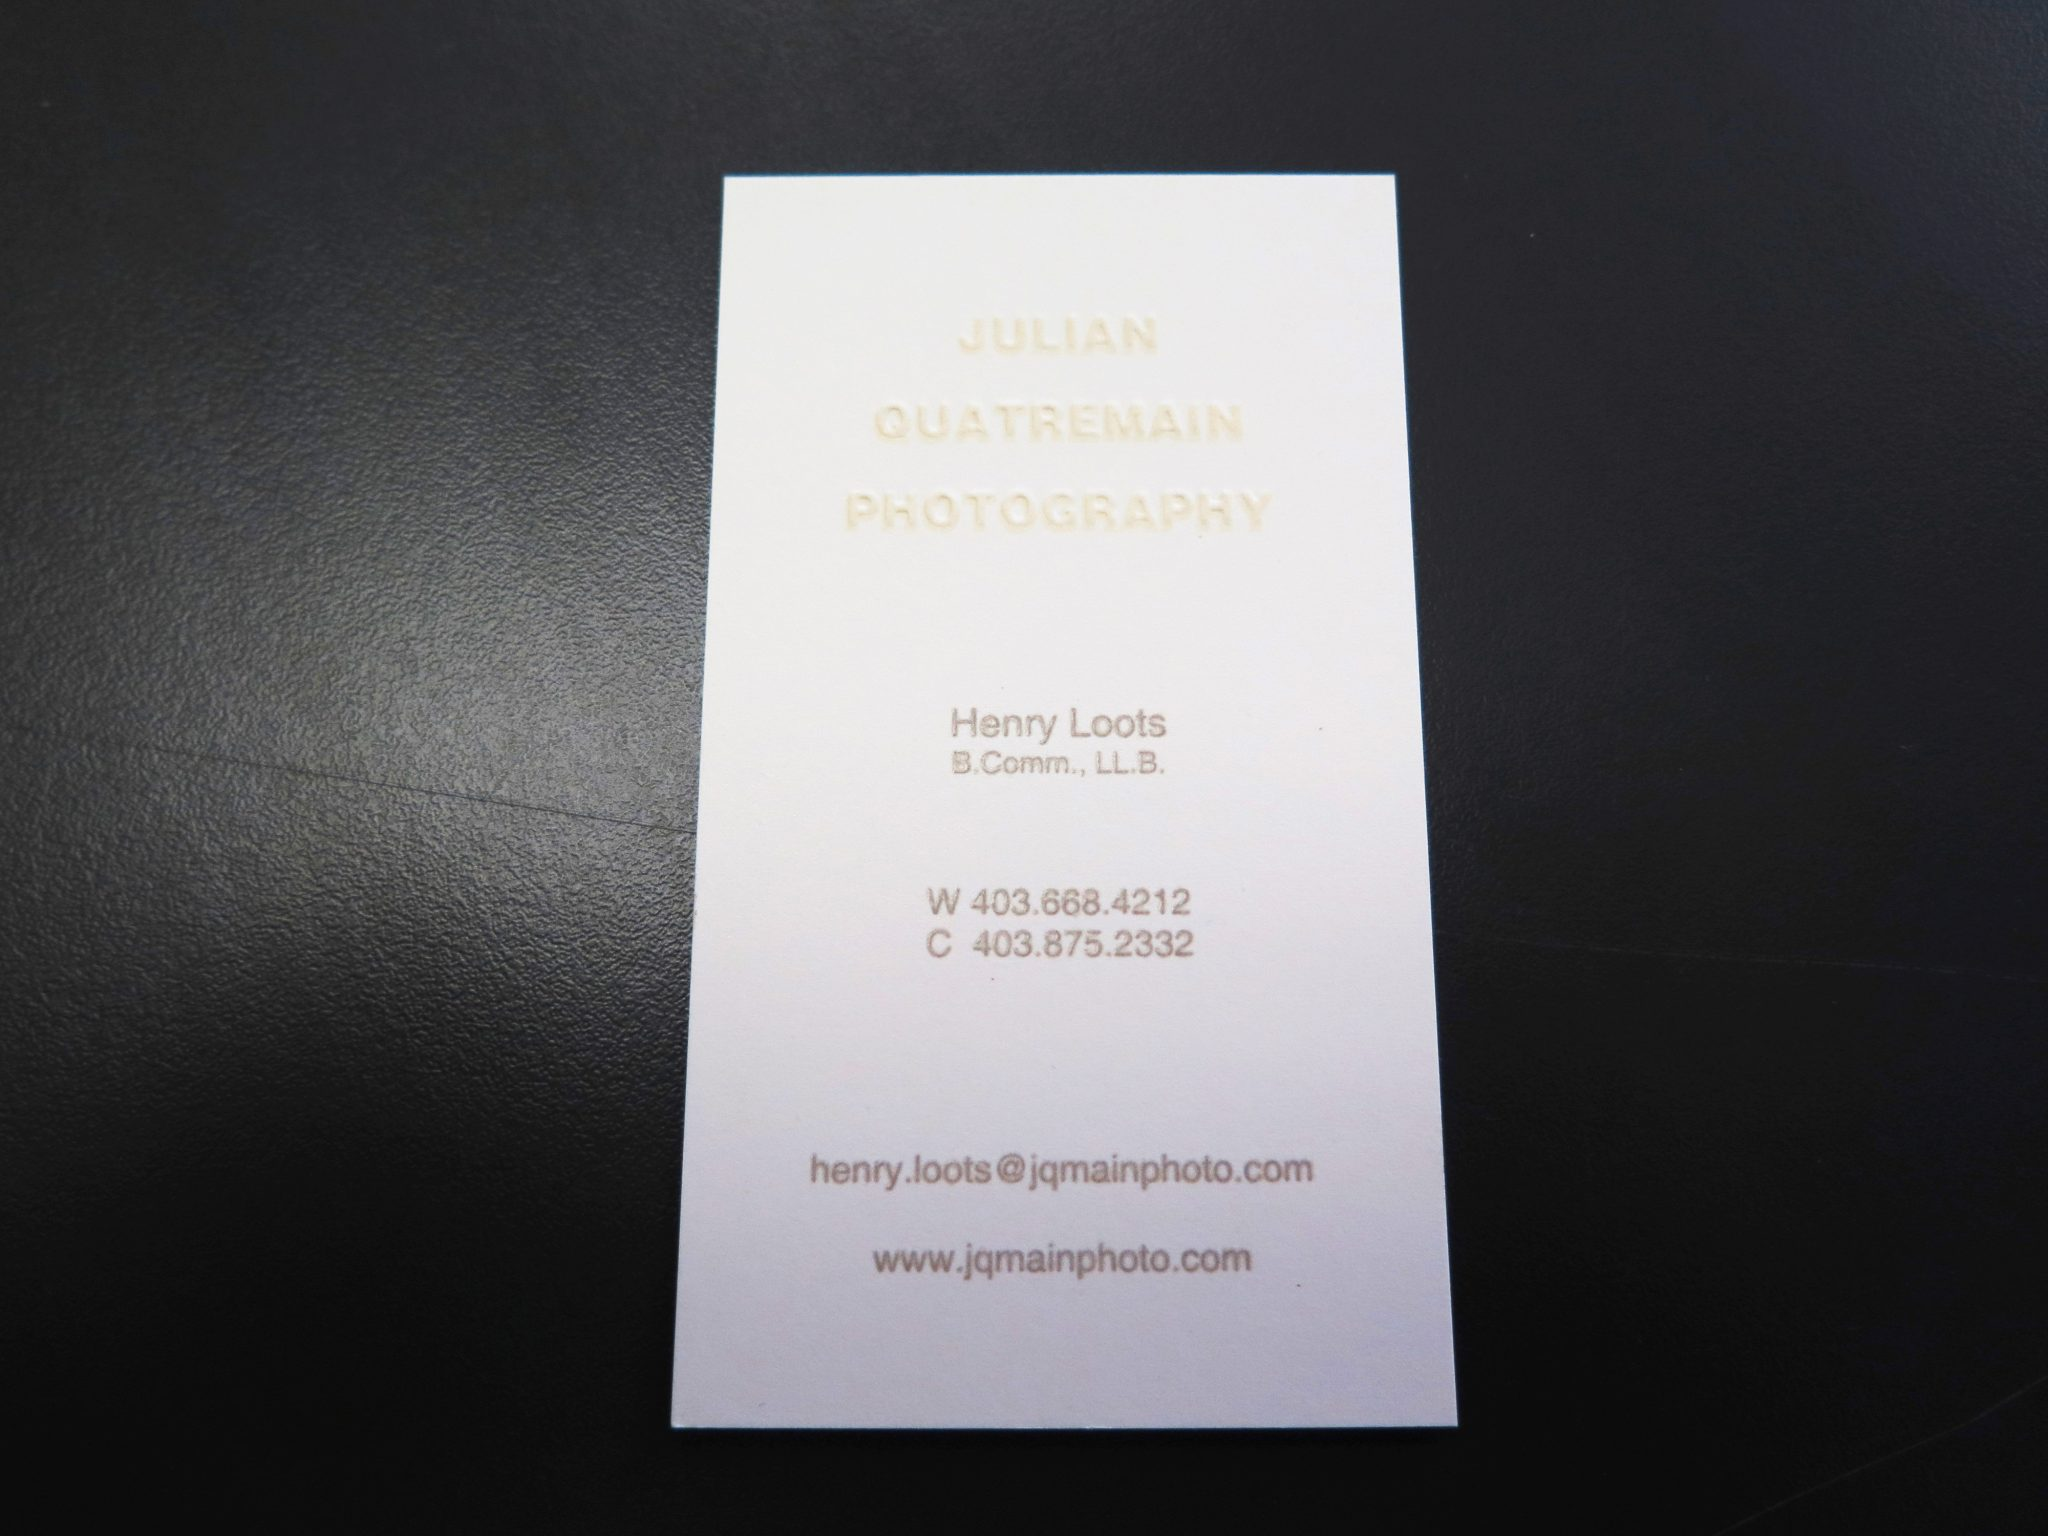 Embossed Business Cards in Calgary - Minuteman Press Beltline